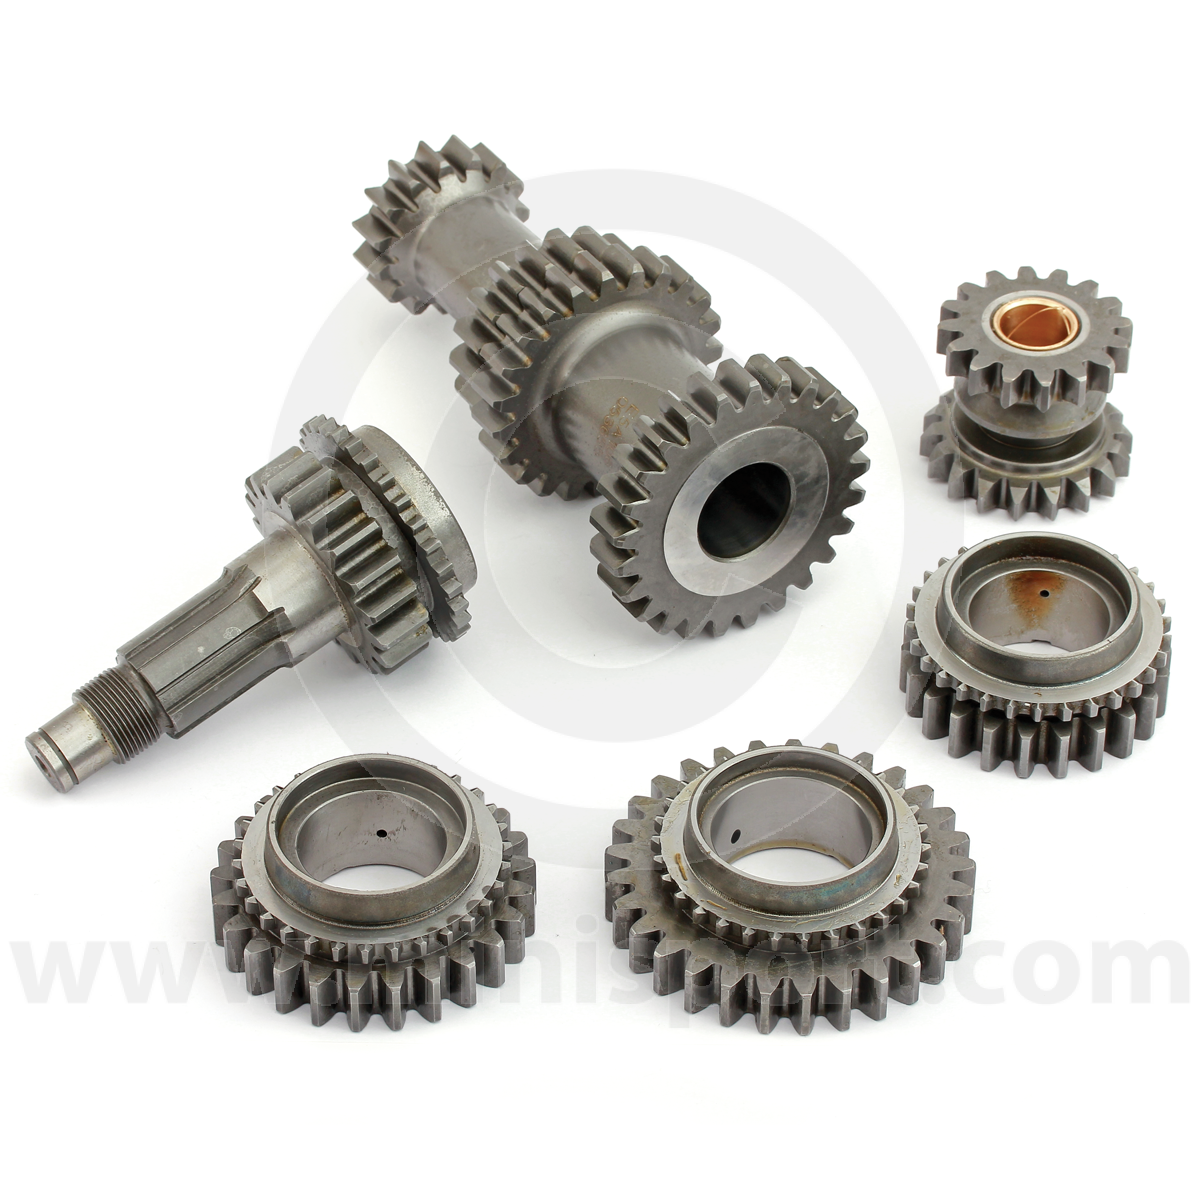 Ms4014ralt Mini Straight Cut Gear Kit Gearbox 1275 Gt With Alternator And Rocker Type Switches Quaife Rod Close Ratio